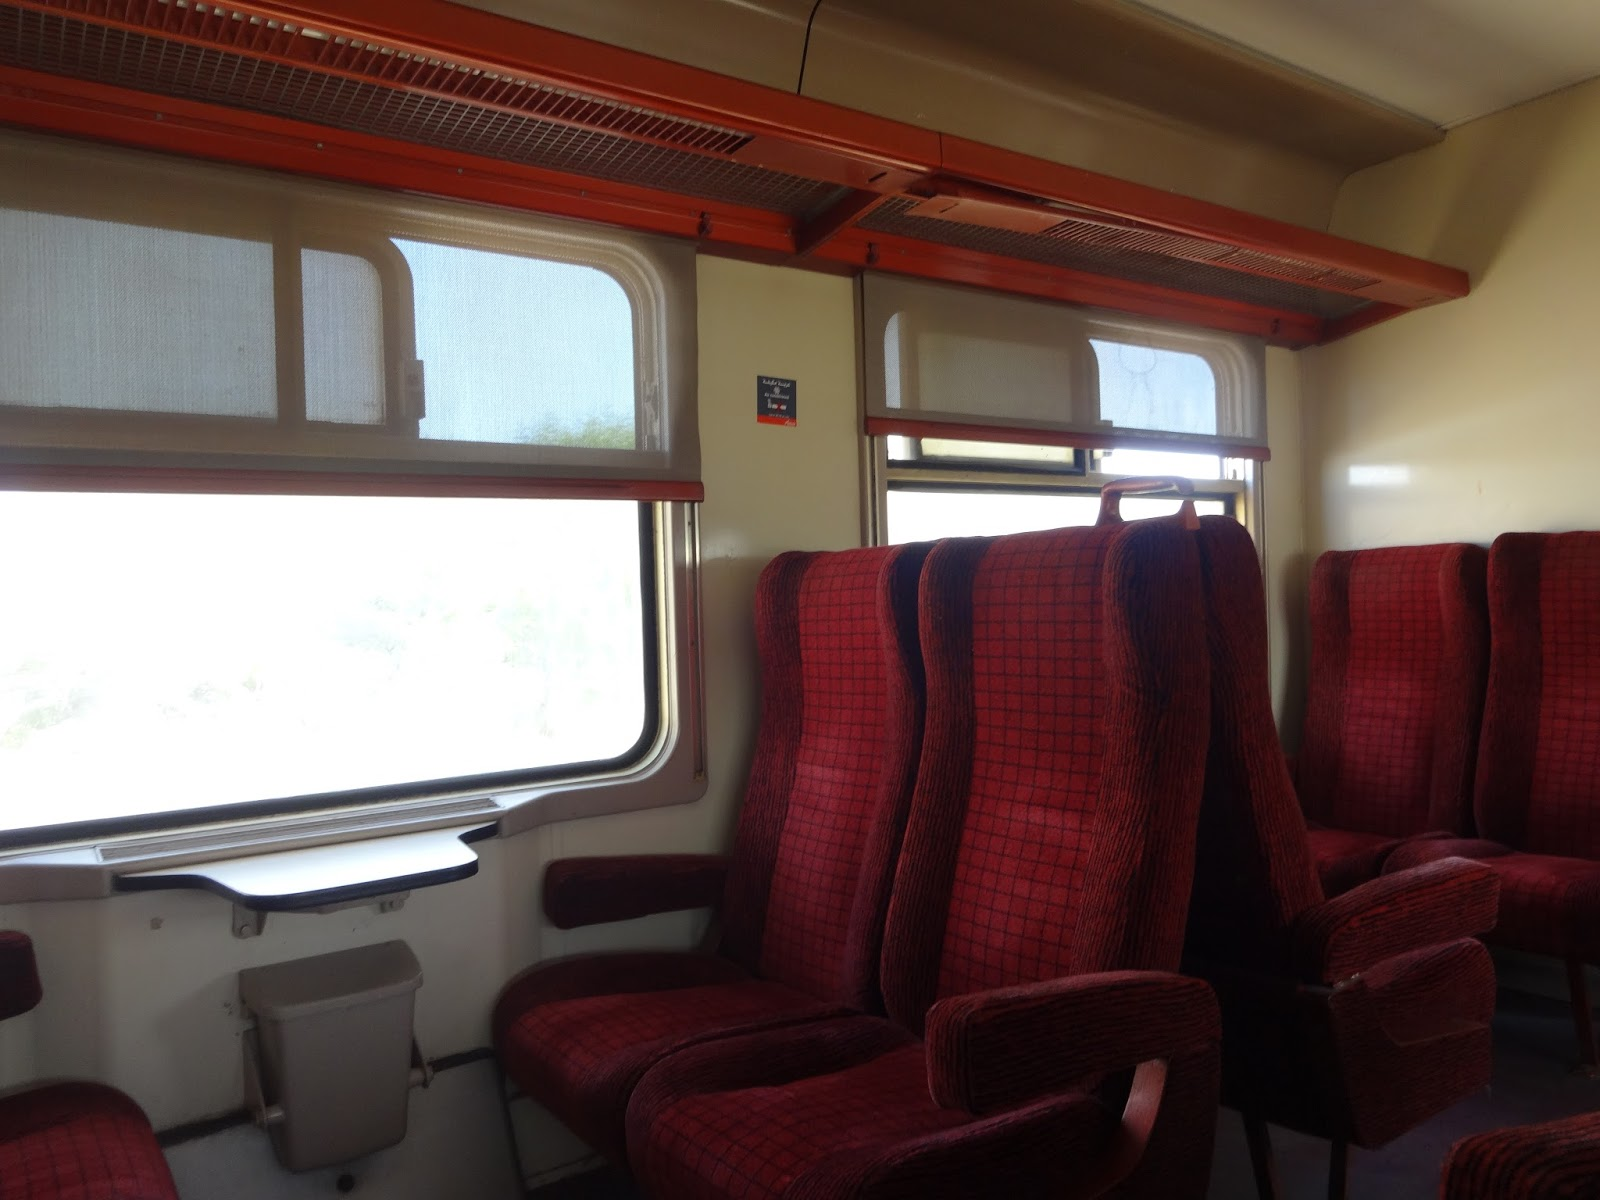 Morocco Travel 101: Using the Train